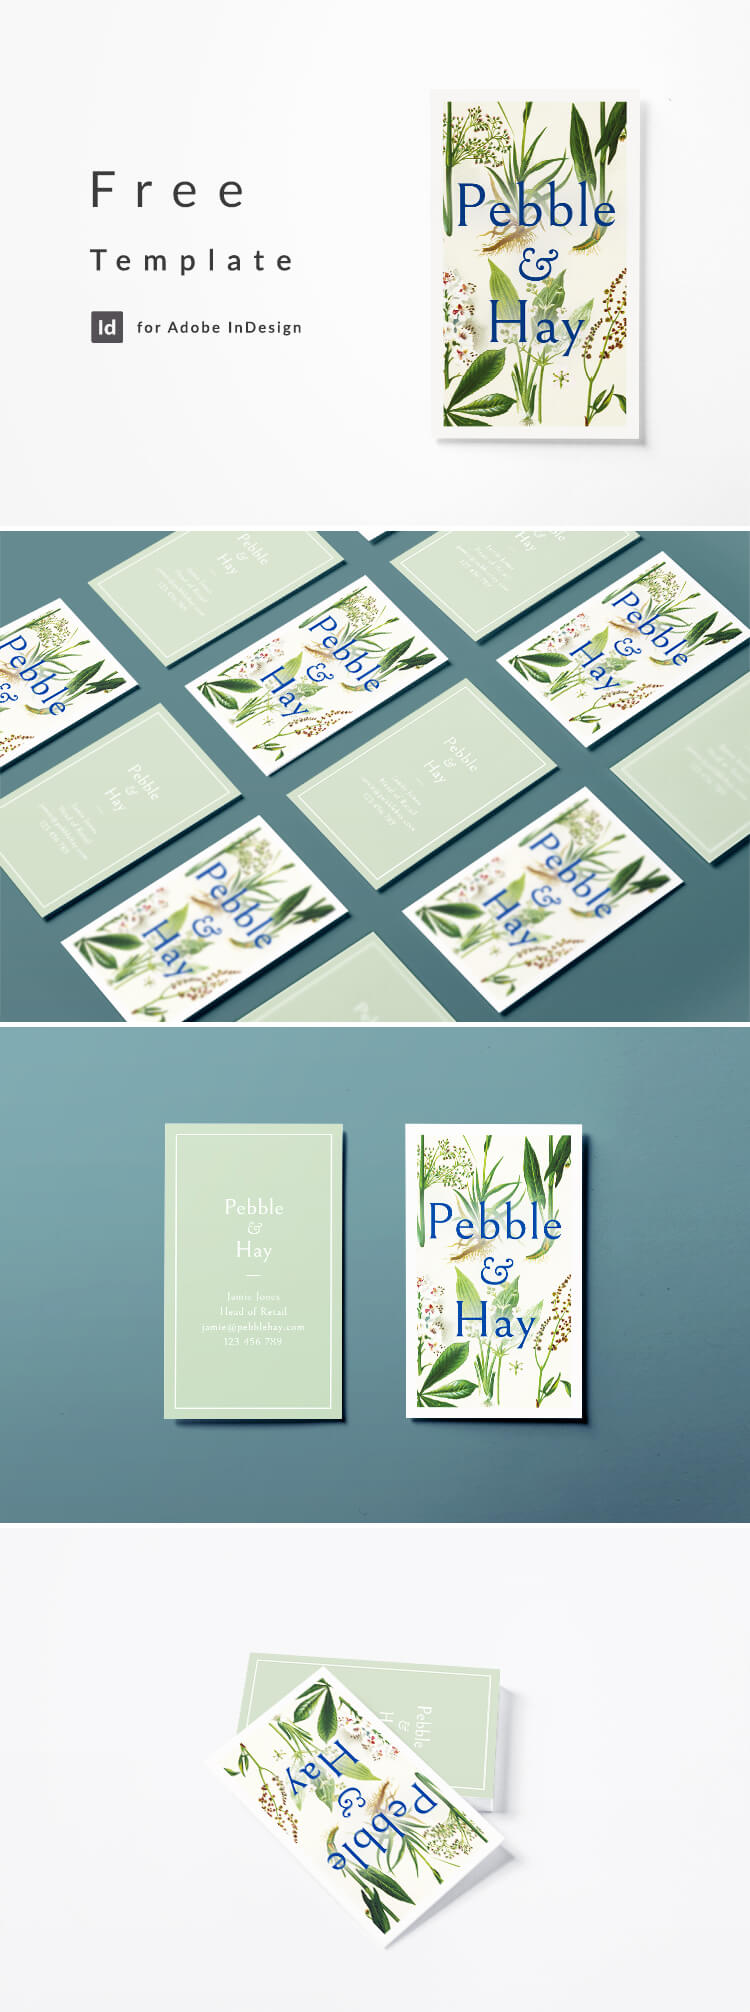 Vintage business card design with botanical illustration. Free download for Adobe InDesign CC.